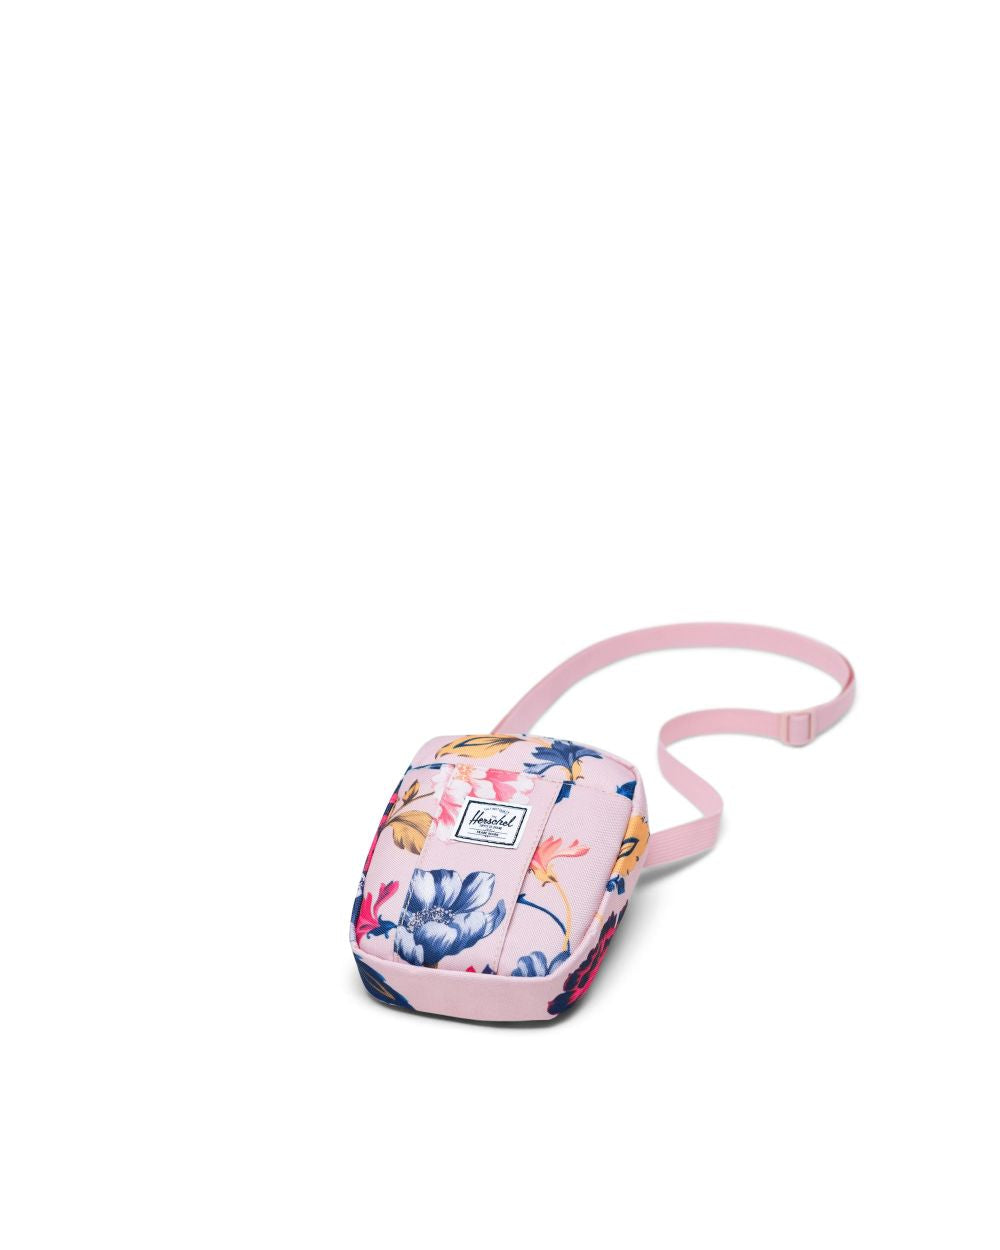 Herschel Supply Co -  Cruz Crossbody, Winter Flora